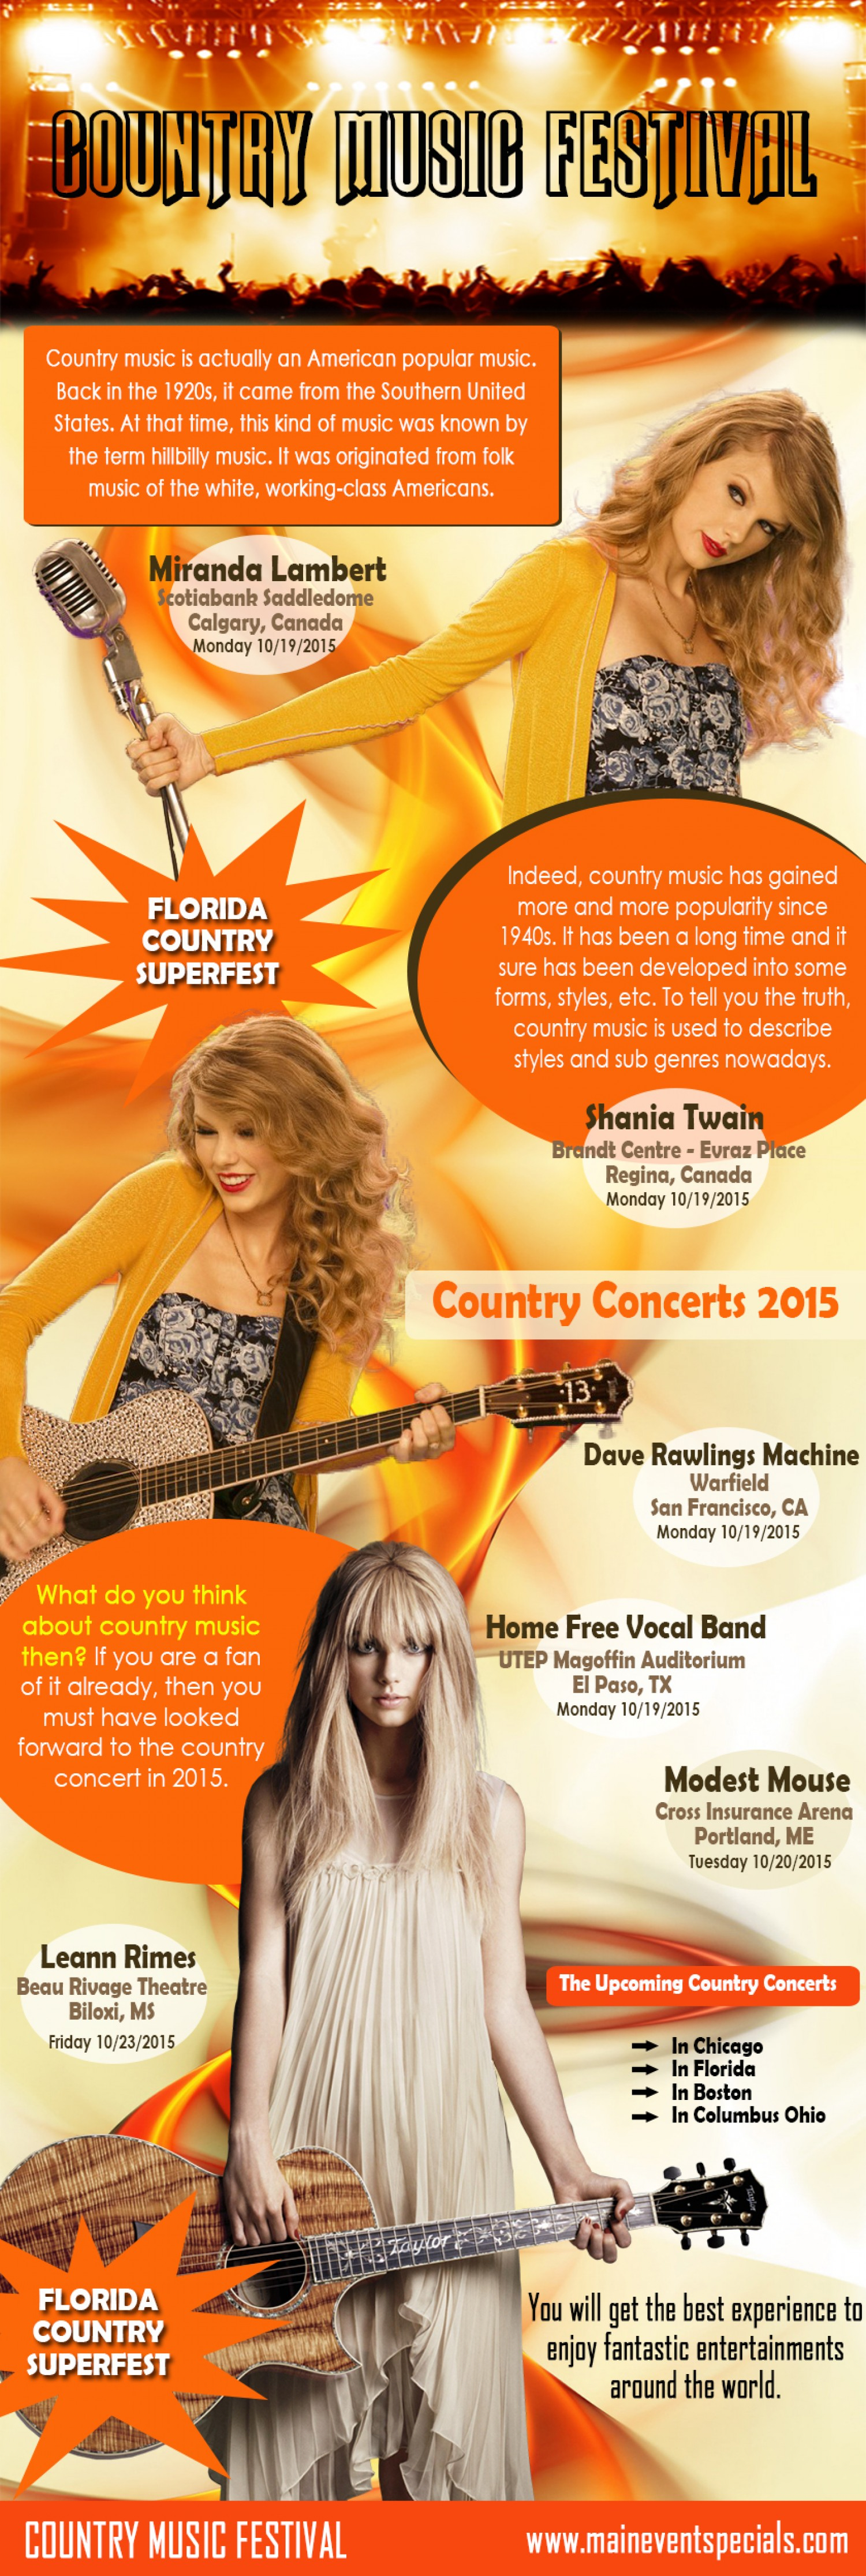 Browse this site http://maineventspecials.com/country-music-concert-tickets/ for more information on Country Music Festival. Considering how far country music has grown, it is no wonder for country concert to be so high in demand just everywhere. In 2013 for example, there was County Music All Star (CMA) Concert in Nashville TN. There is annual 3-day summer festival in Fort Loramie.